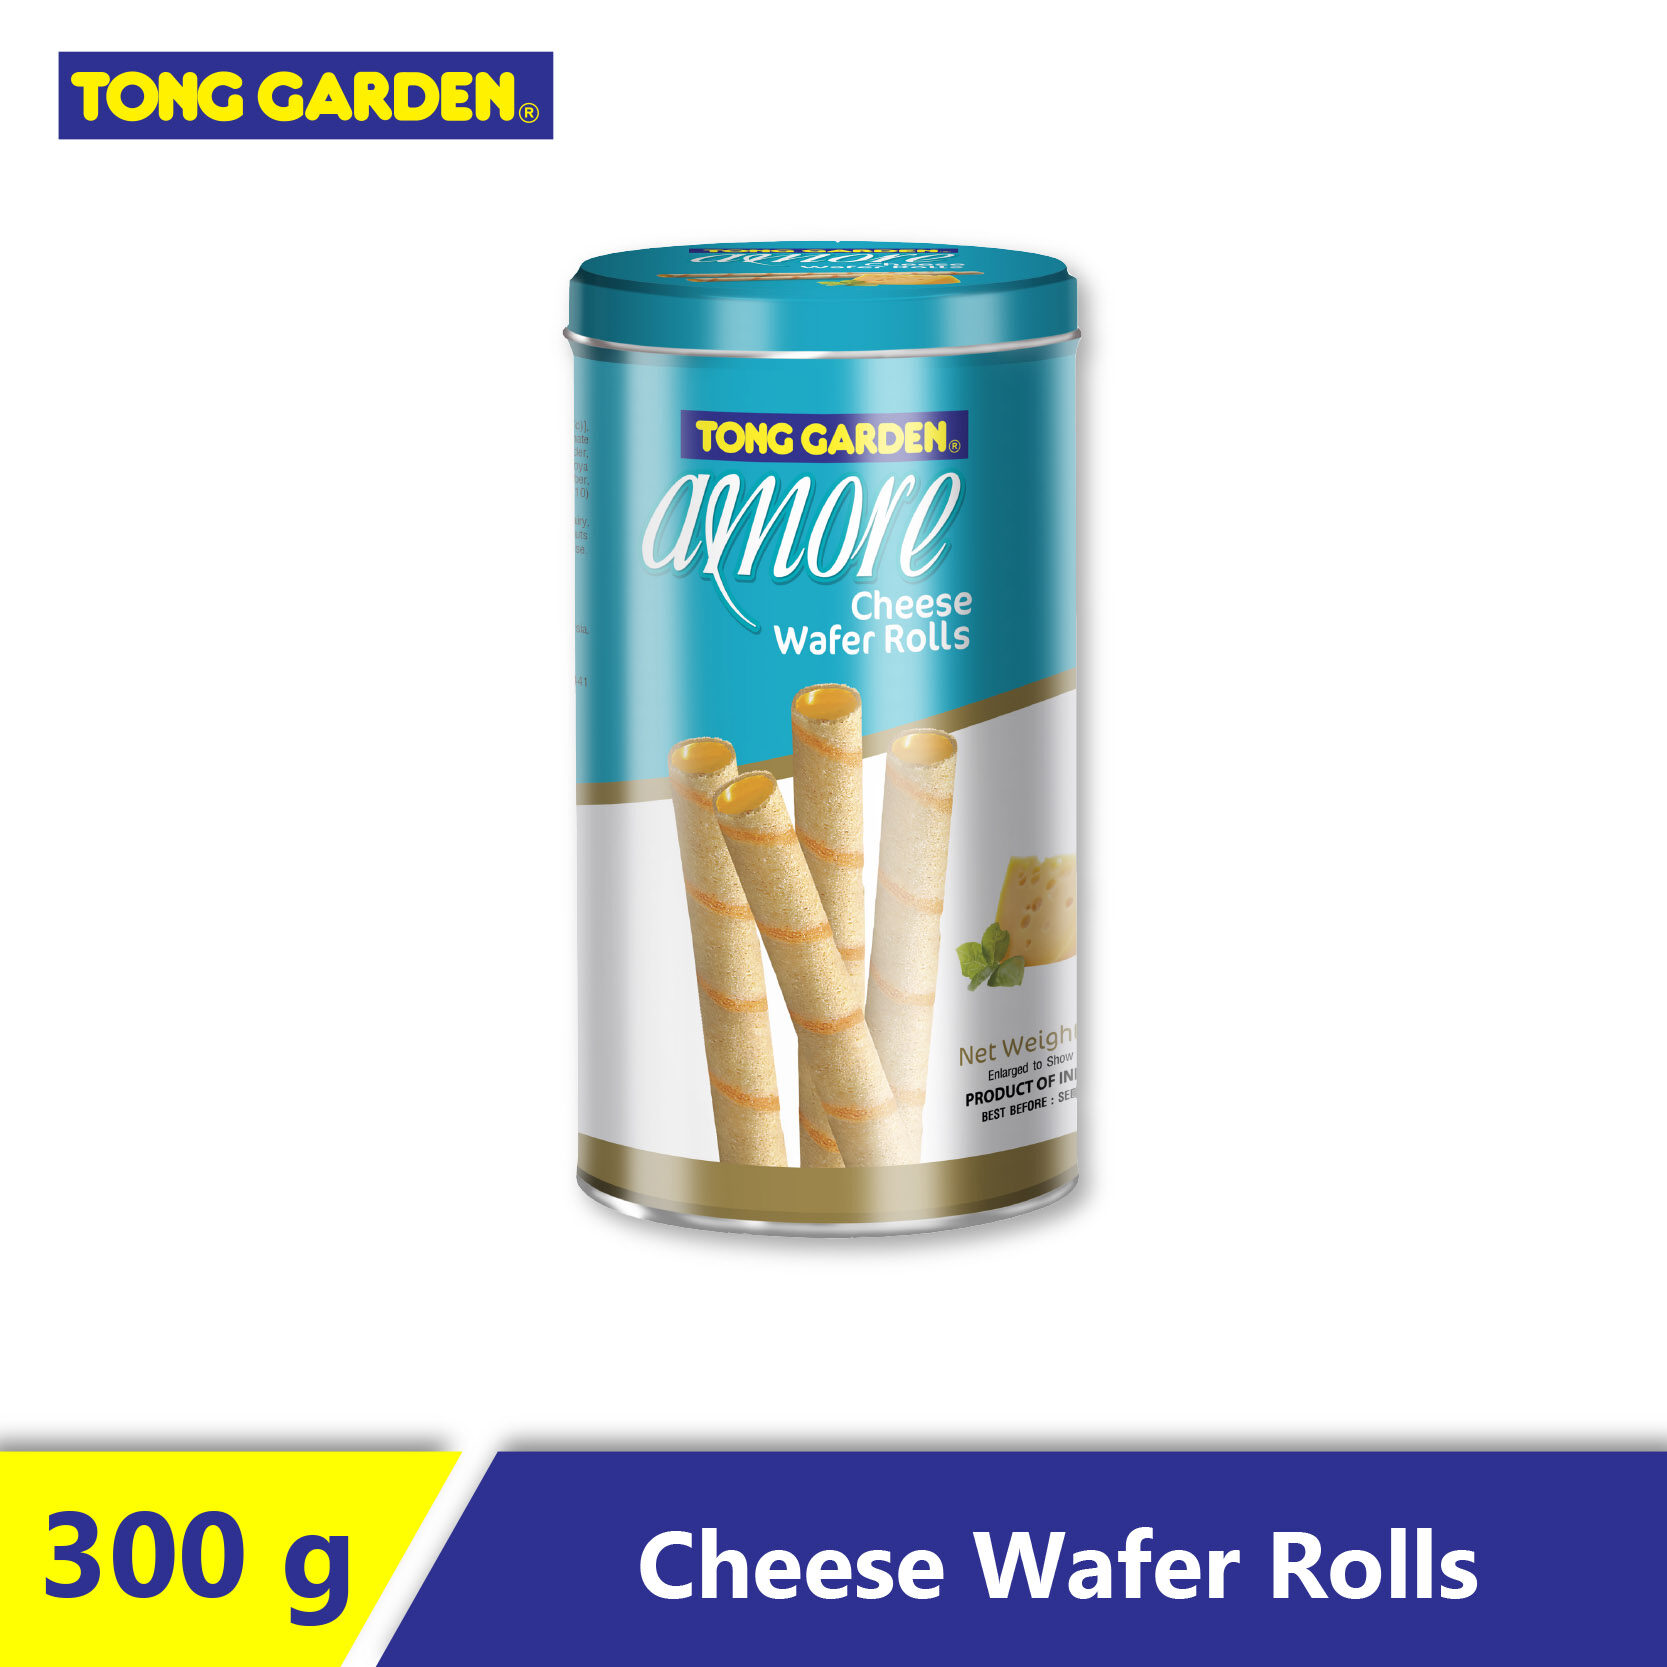 AMORE Cheese Wafer Roll 270g